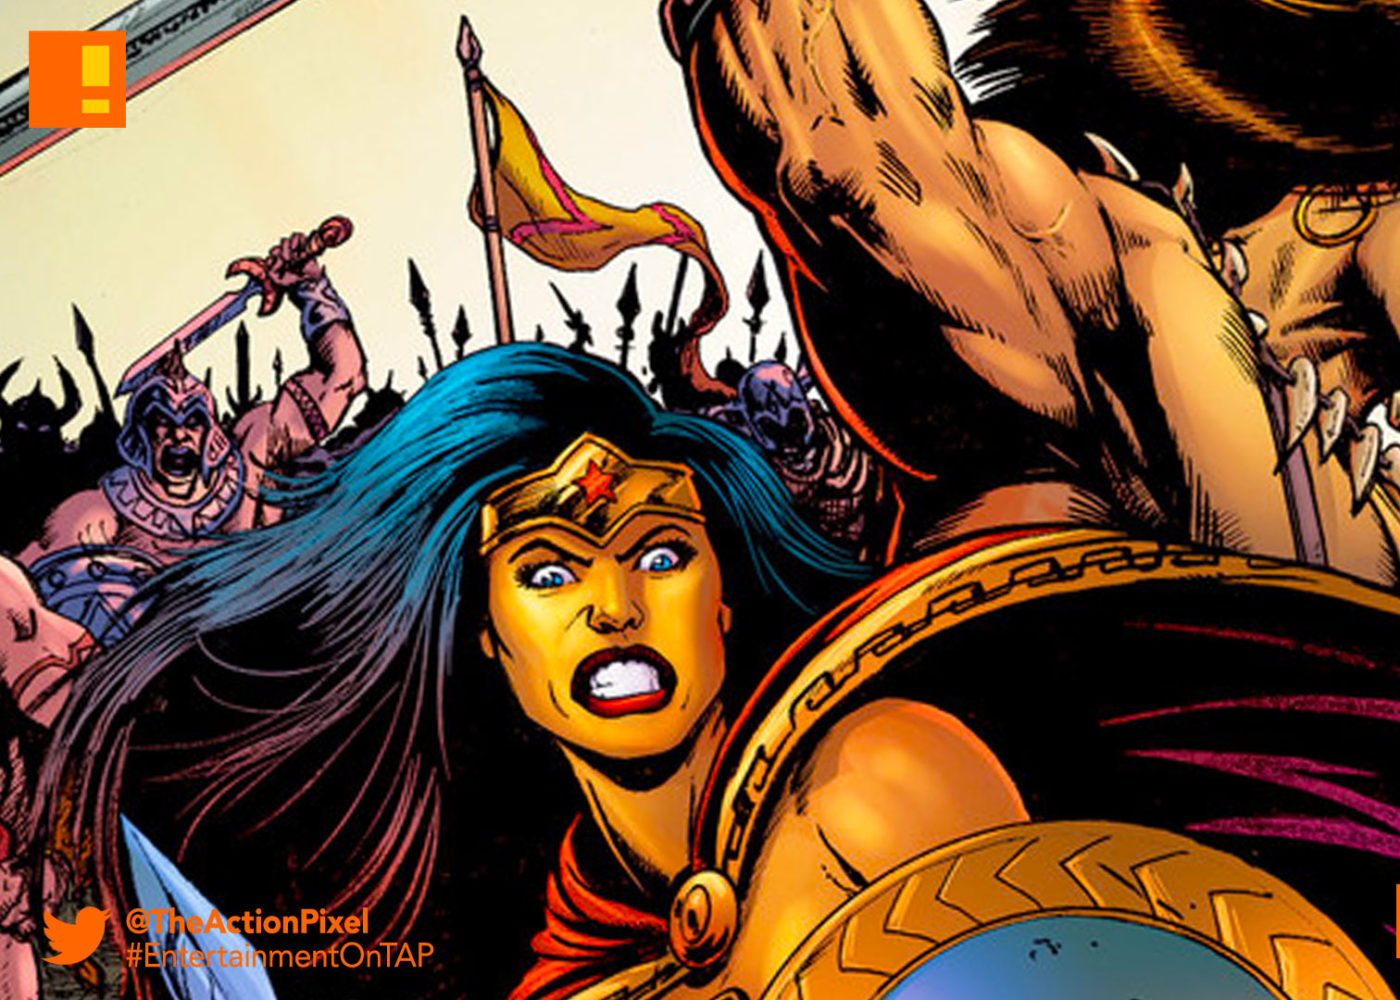 conan, wonder woman, dark horse comics, dark horse, dc comics, dc entertainment, diana, themyscara, the barbarian,conan the barbarian,